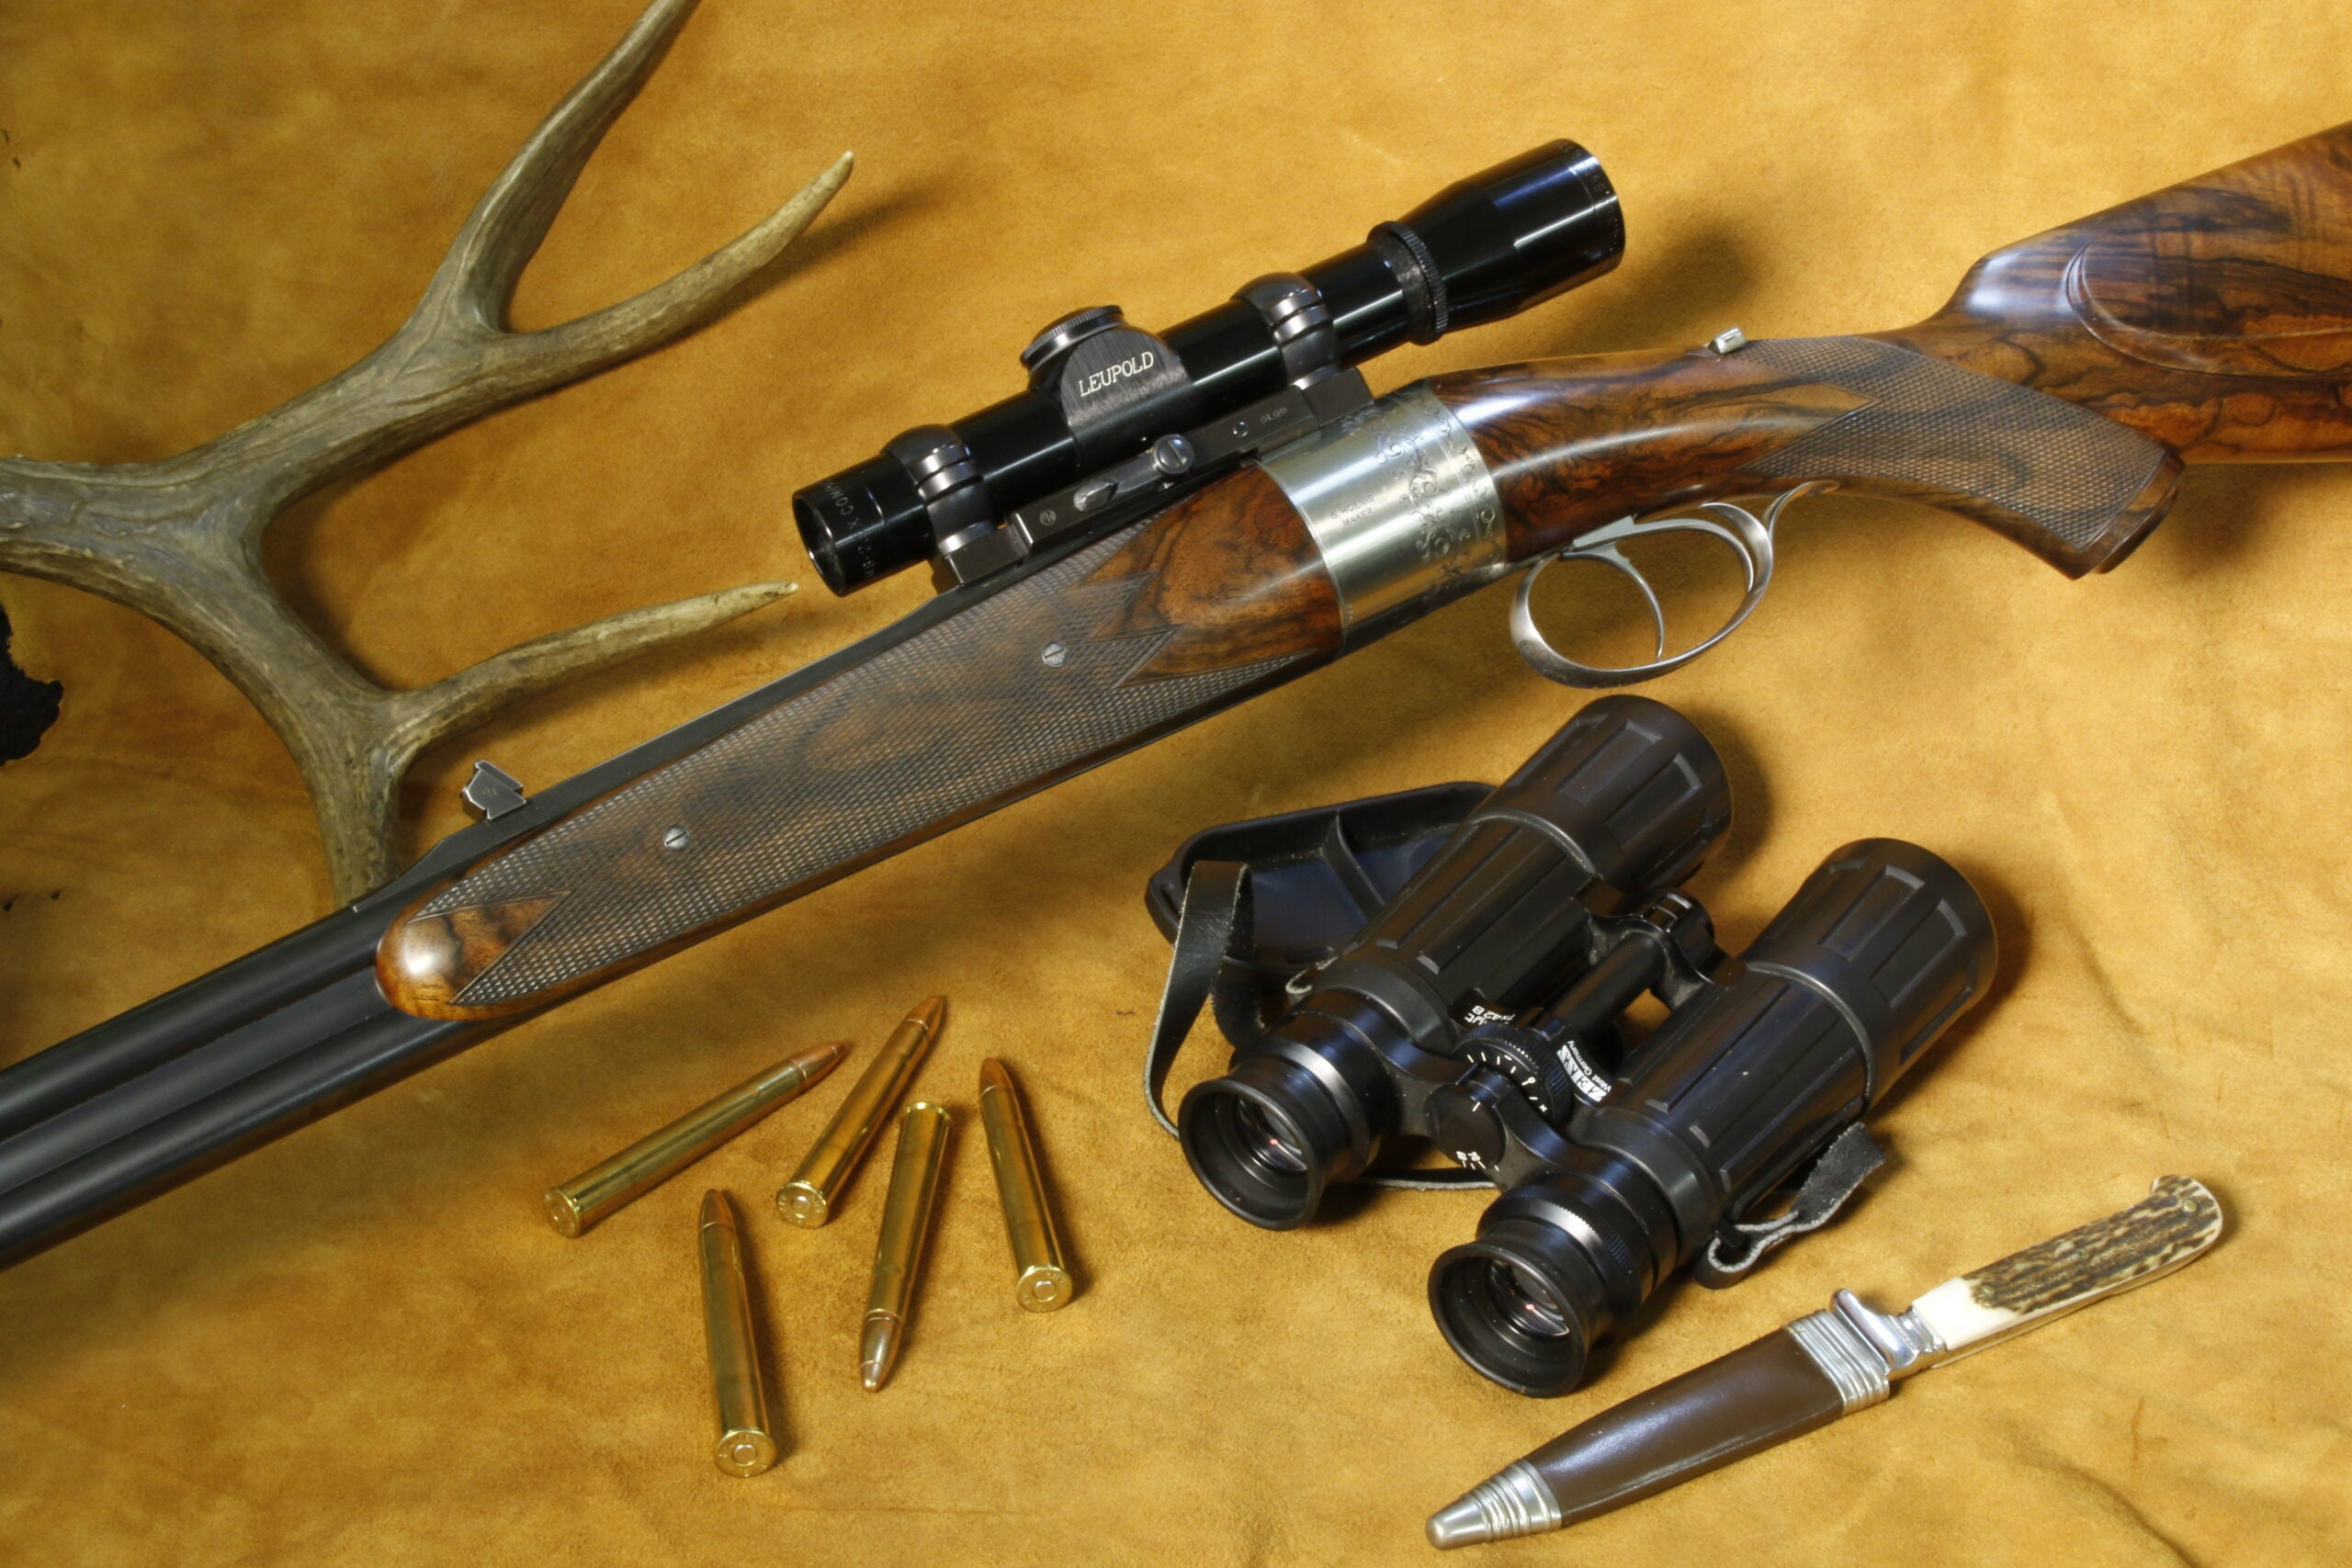 The Hoenig Round Action rifle is an obscure but impressive sporting rifle.